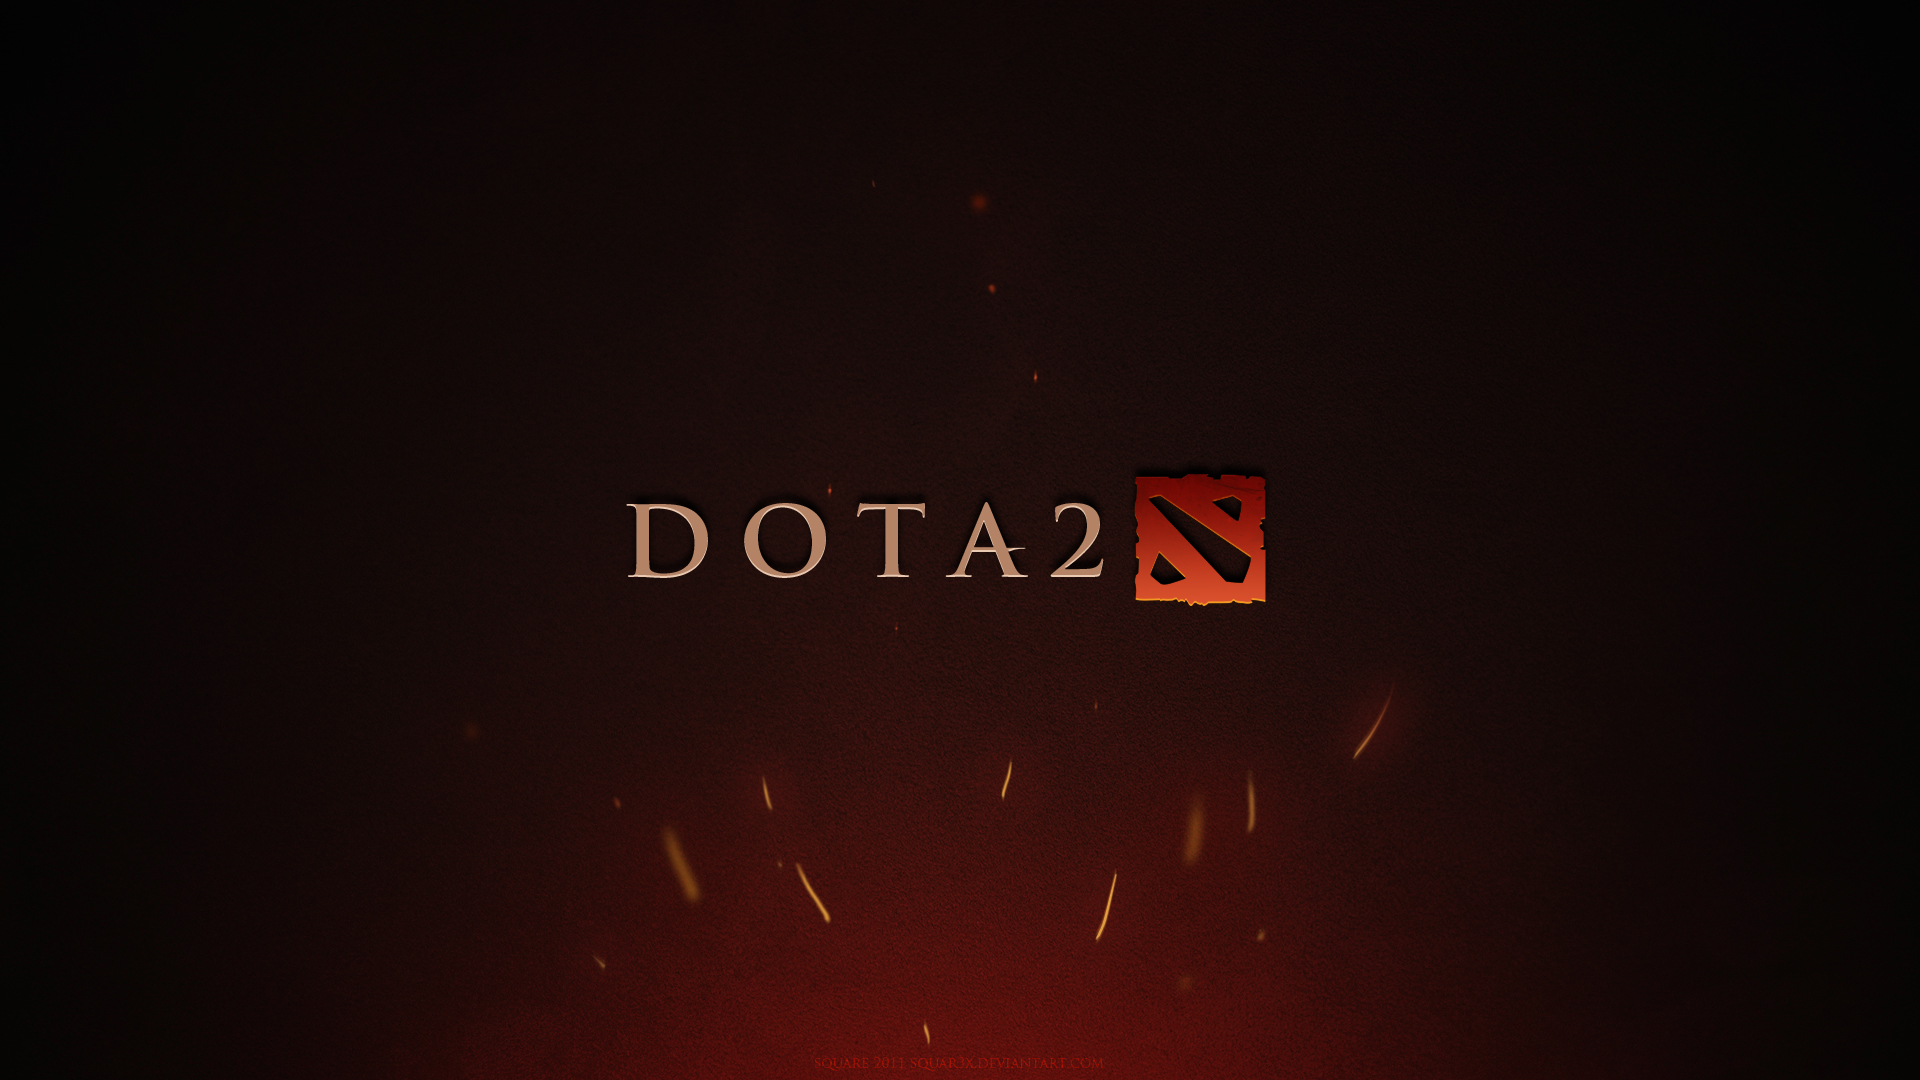 Steam Valve DotA 2 Logo   Dota 2 Wallpaper 1920x1080